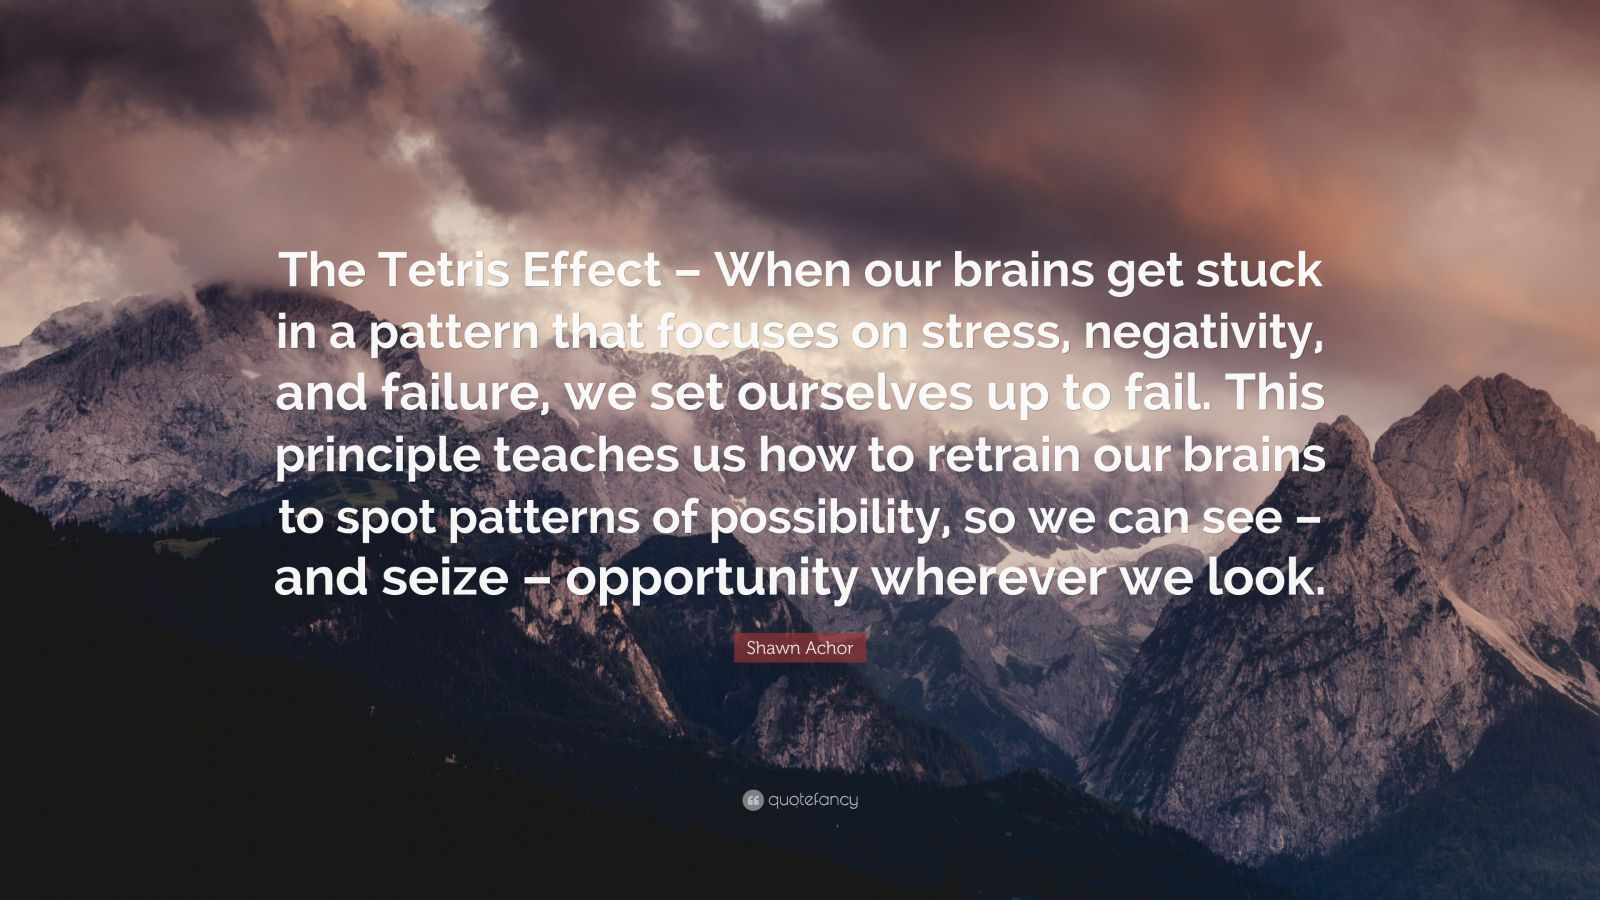 """Shawn Achor Quote: """"The Tetris Effect – When our brains get stuck in a pattern that focuses on stress, negativity, and failure, we set ourselves up to fail. This principle teaches us how to retrain our brains to spot patterns of possibility, so we can see – and seize – opportunity wherever we look."""""""